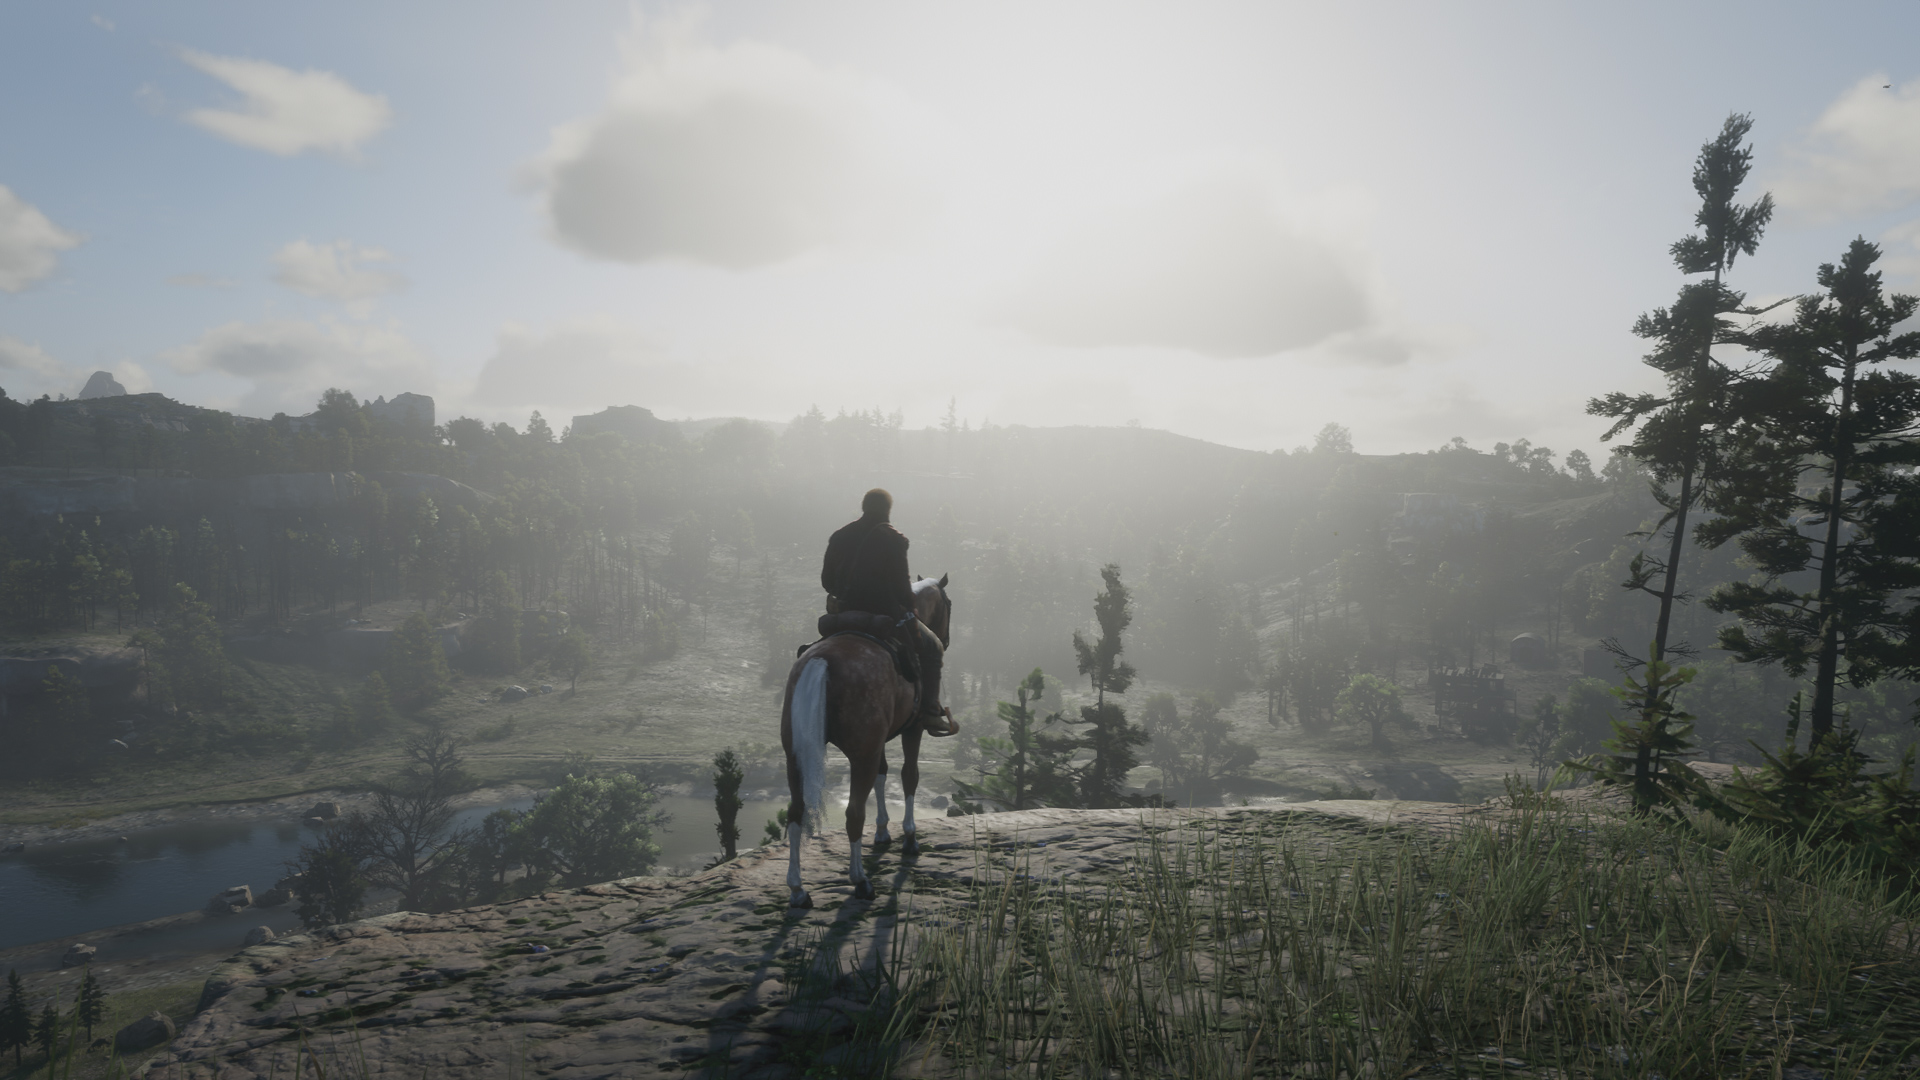 Pferde in Red Dead Redemption 2, Begleiter, Pflege, Tipps, Tricks, Review, Playstation 4 Pro, Hack4Life, Fabian Geissler, Game Engine, Welt, Tricks, Hacks, Bugs